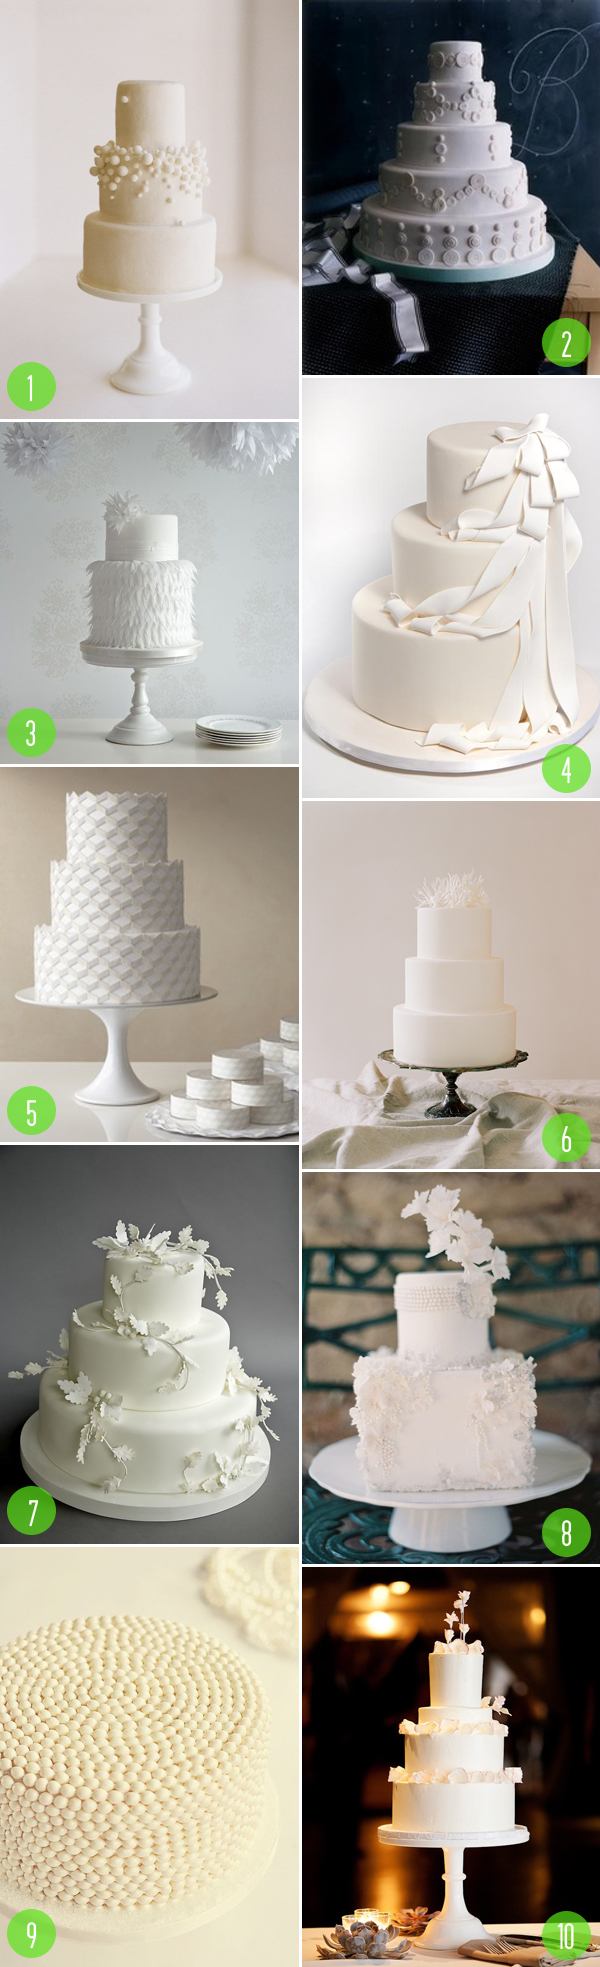 top 10: white wedding cakes